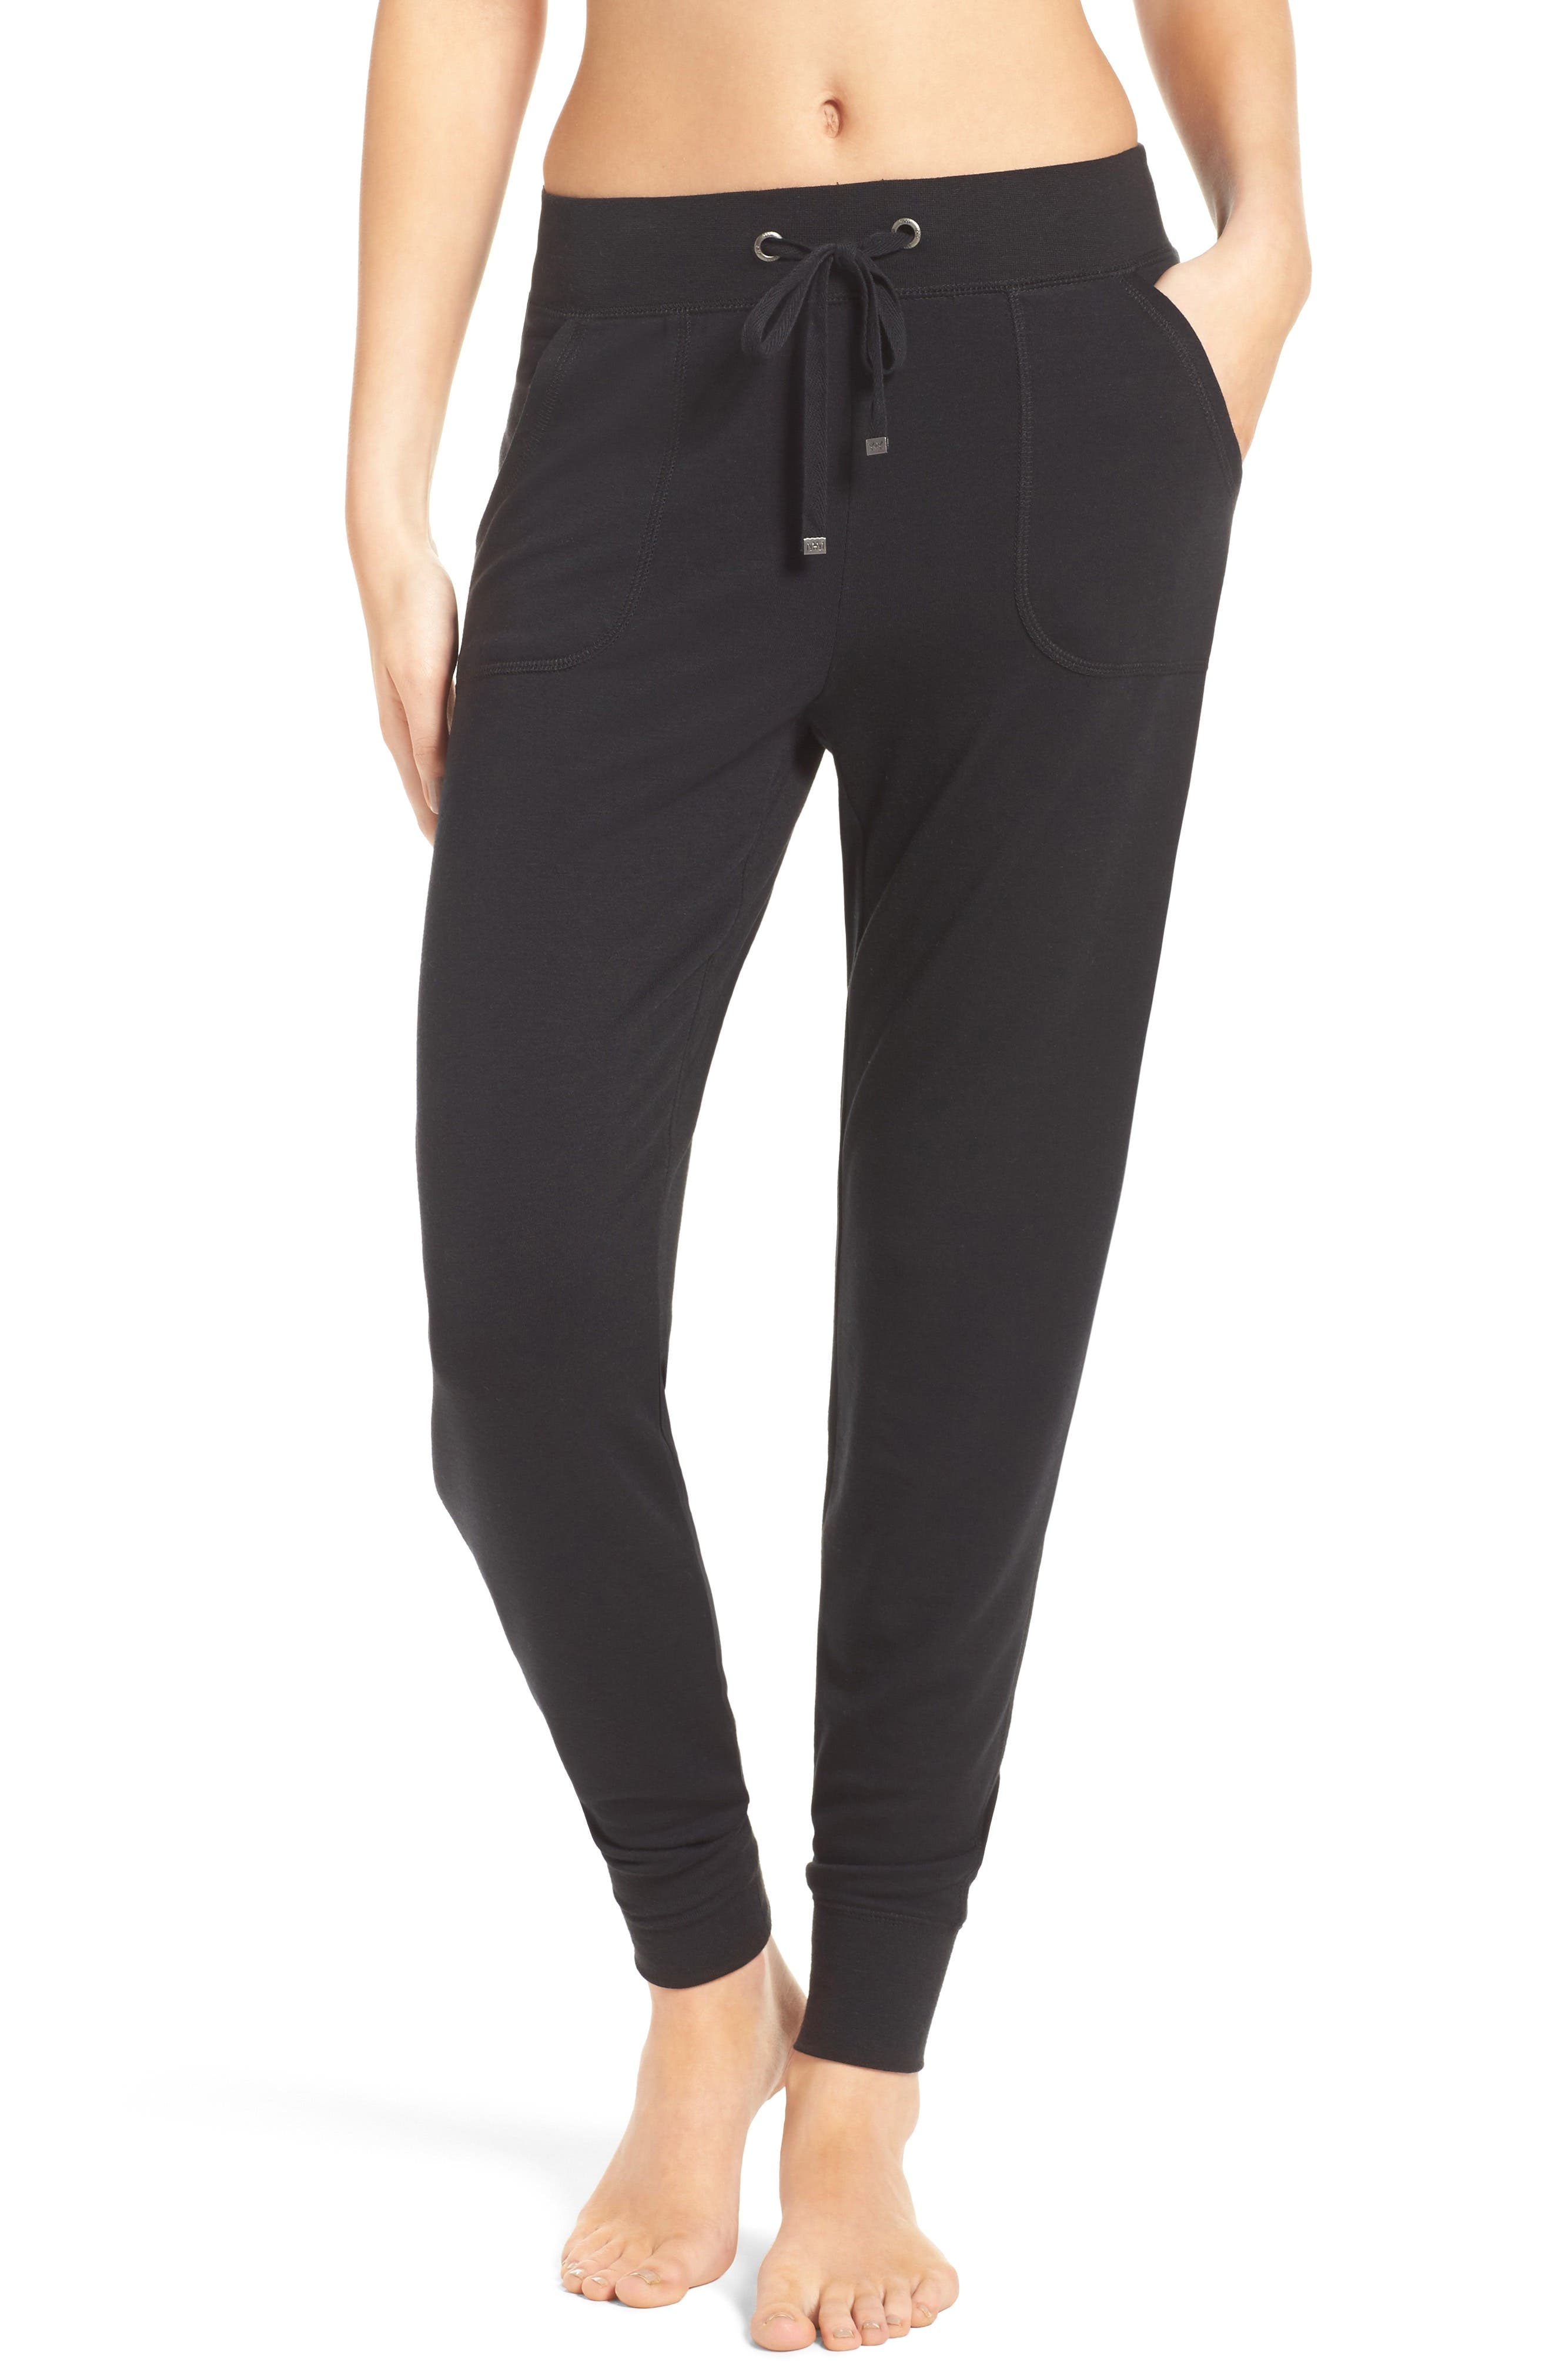 All About It Lounge Pants,                             Main thumbnail 5, color,